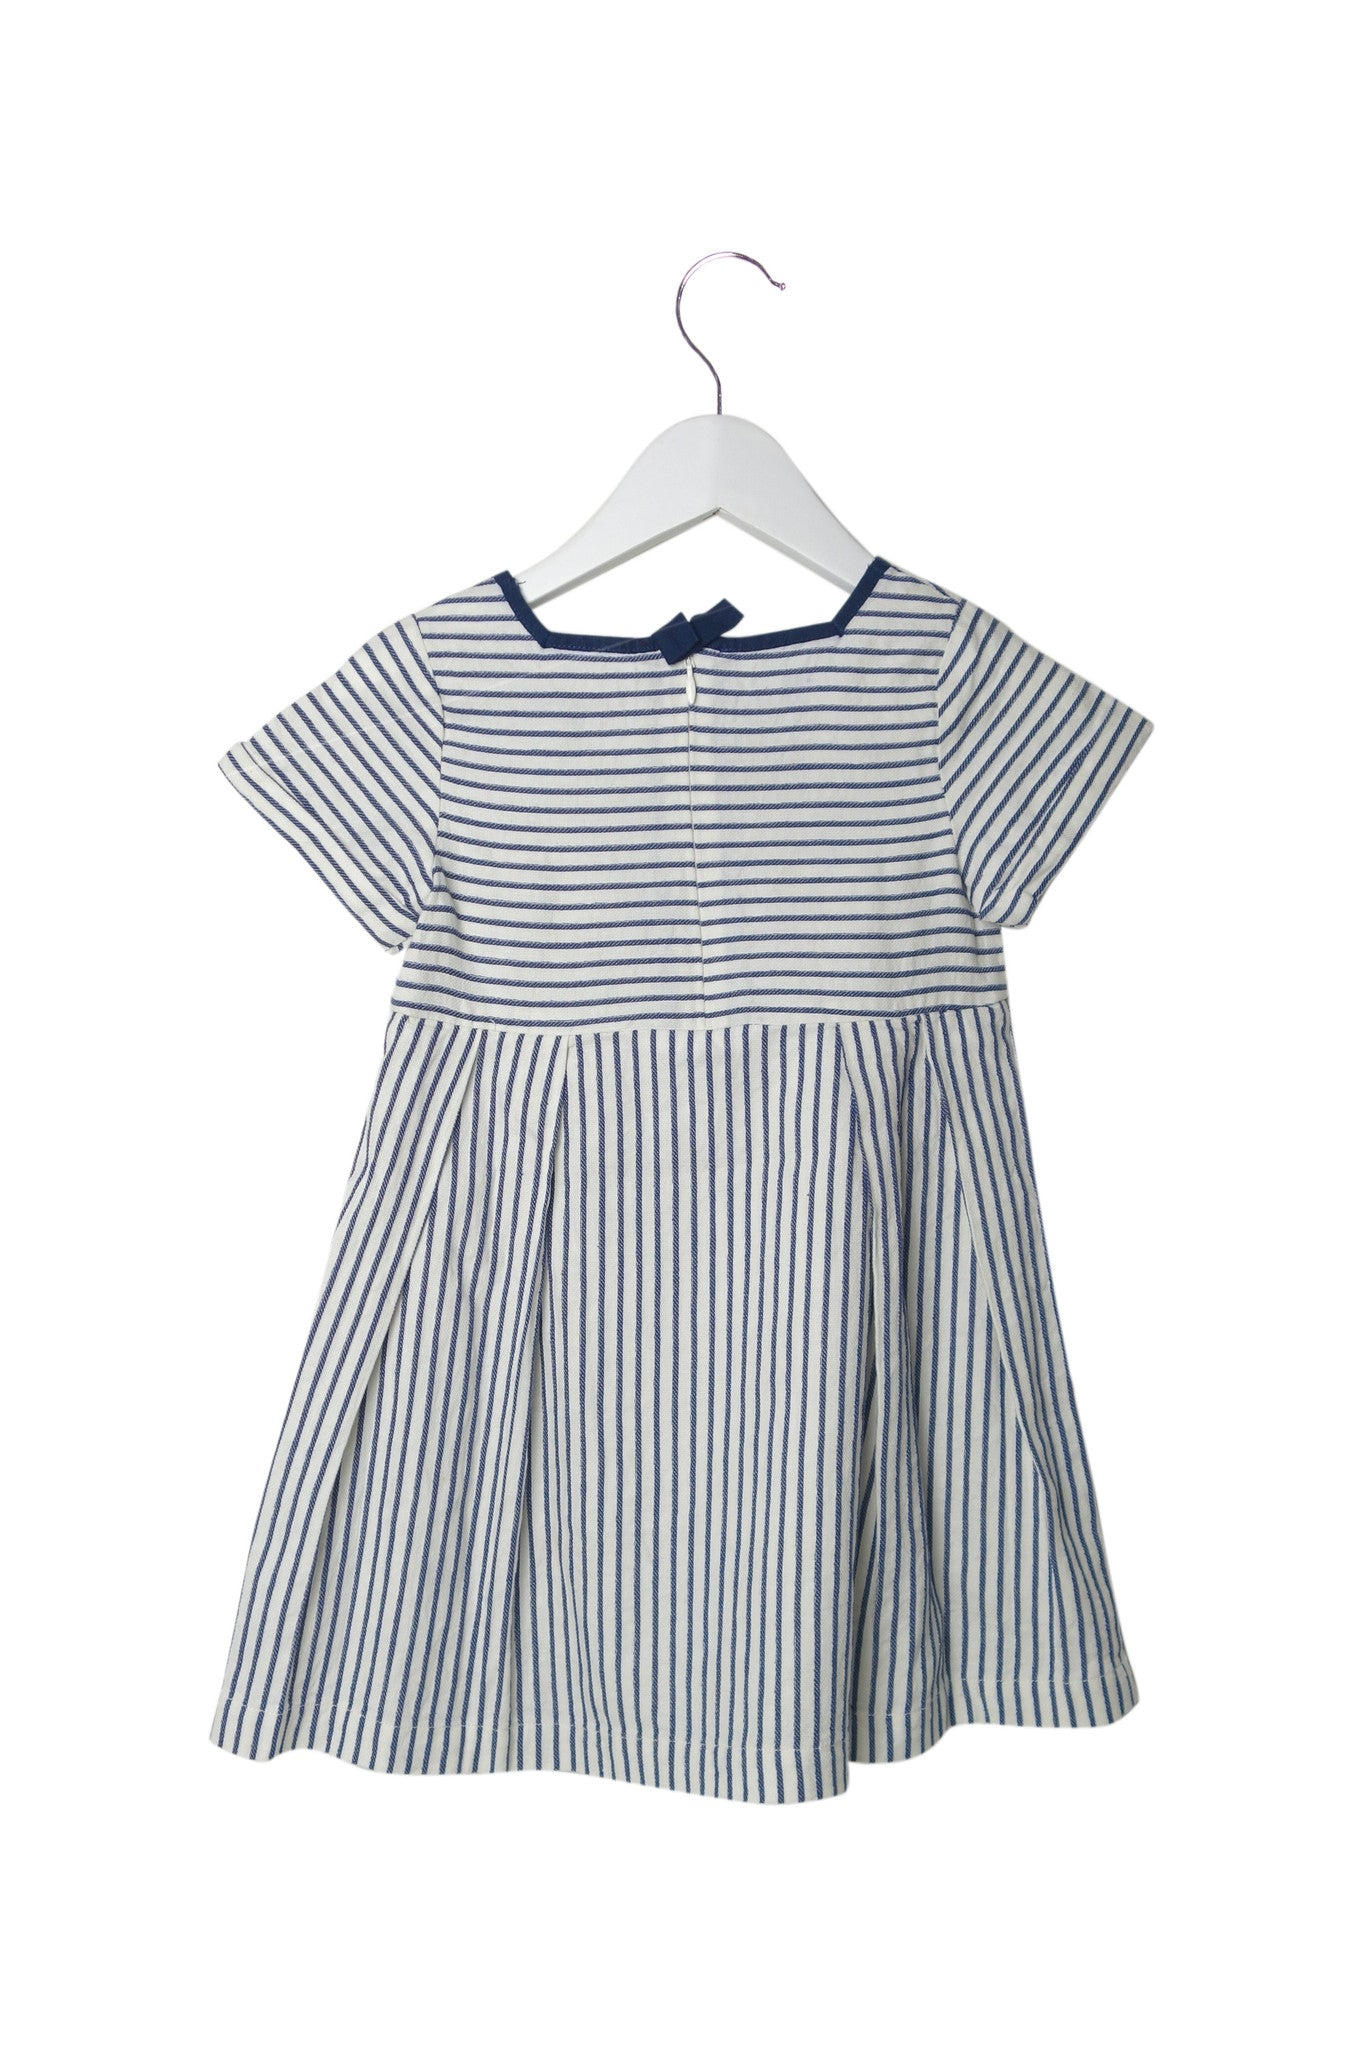 10002549 Jacadi Kids~Dress 4T at Retykle